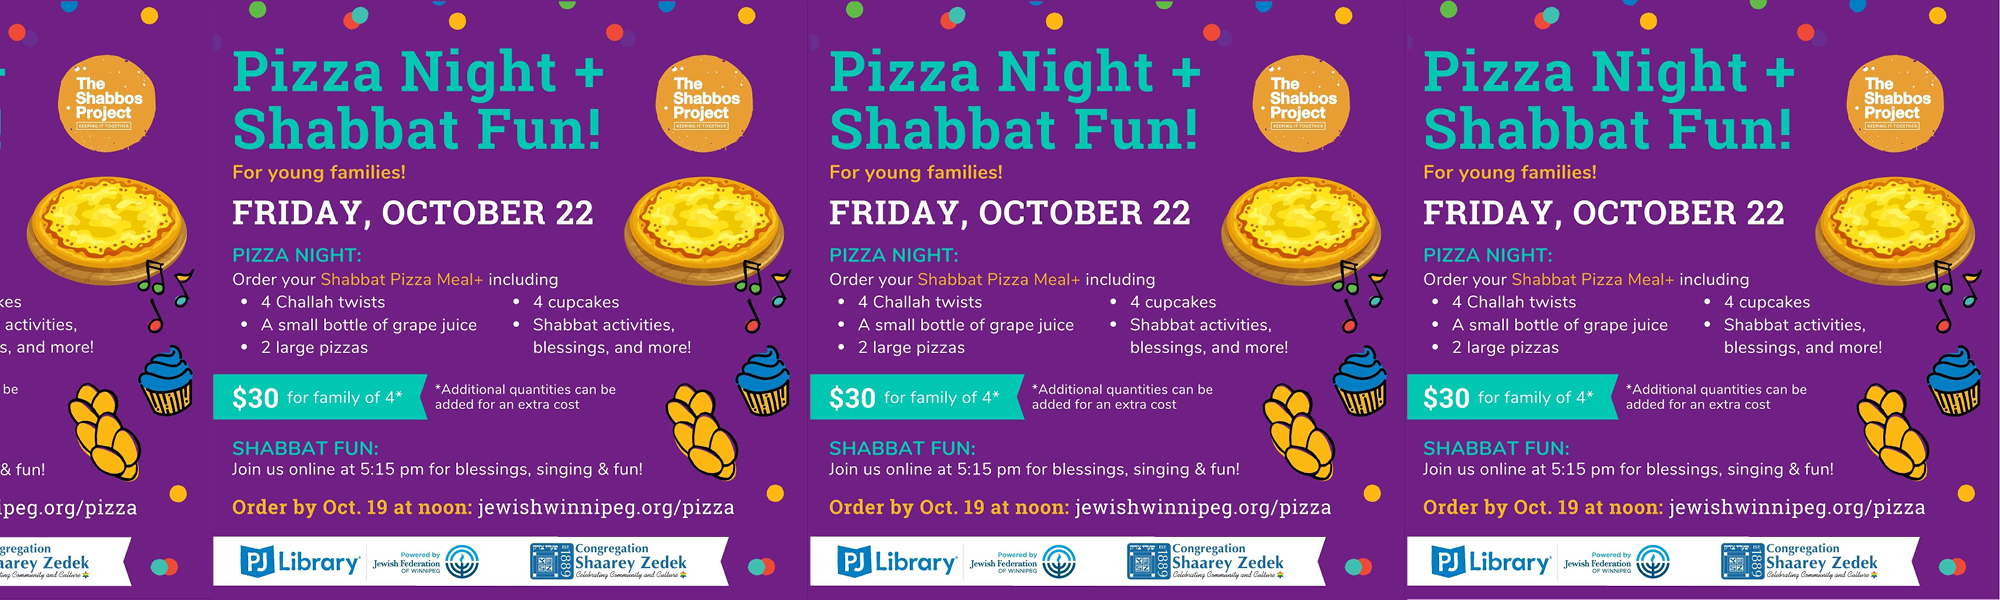 """<a href=""""https://www.szwinnipeg.ca/event/2021-10-22-Pizza-Night-Shabbat-Fun""""                                     target="""""""">                                                                 <span class=""""slider_title"""">                                     Pizza Night + Shabbat Fun for Young Families, Fri, Oct 22, 5:15 PM CDT                                </span>                                                                 </a>                                                                                                                                                                                       <span class=""""slider_description"""">Order by Oct 19 at Noon CDT then join us online at 5:15 PM on October 22 for blessings, singing and fun!</span>                                                                                     <a href=""""https://www.szwinnipeg.ca/event/2021-10-22-Pizza-Night-Shabbat-Fun"""" class=""""slider_link""""                             target="""""""">                             Learn More                            </a>"""